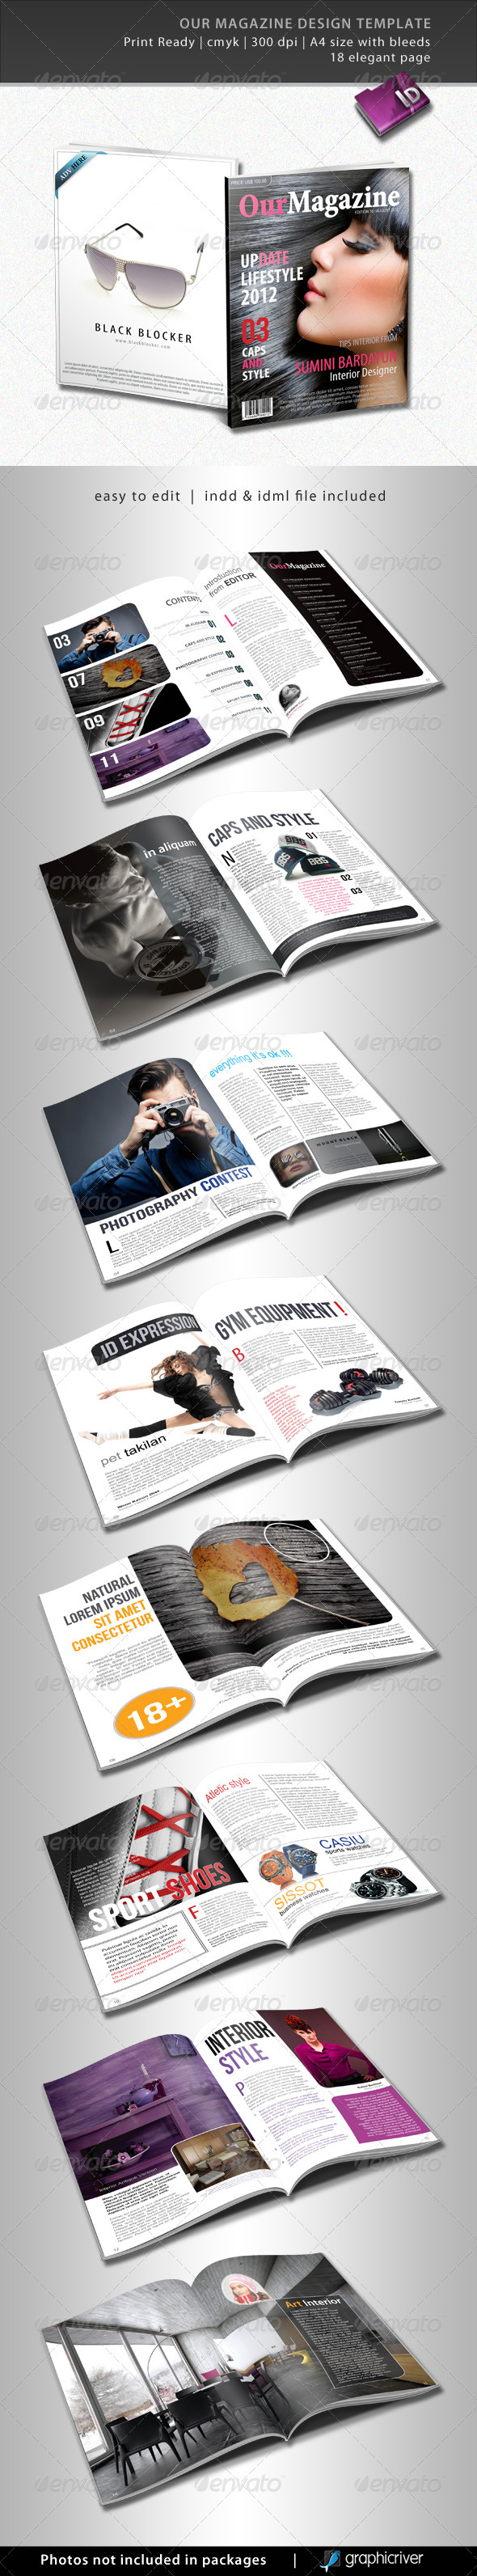 Our Magazine Design Template - Magazines Print Templates